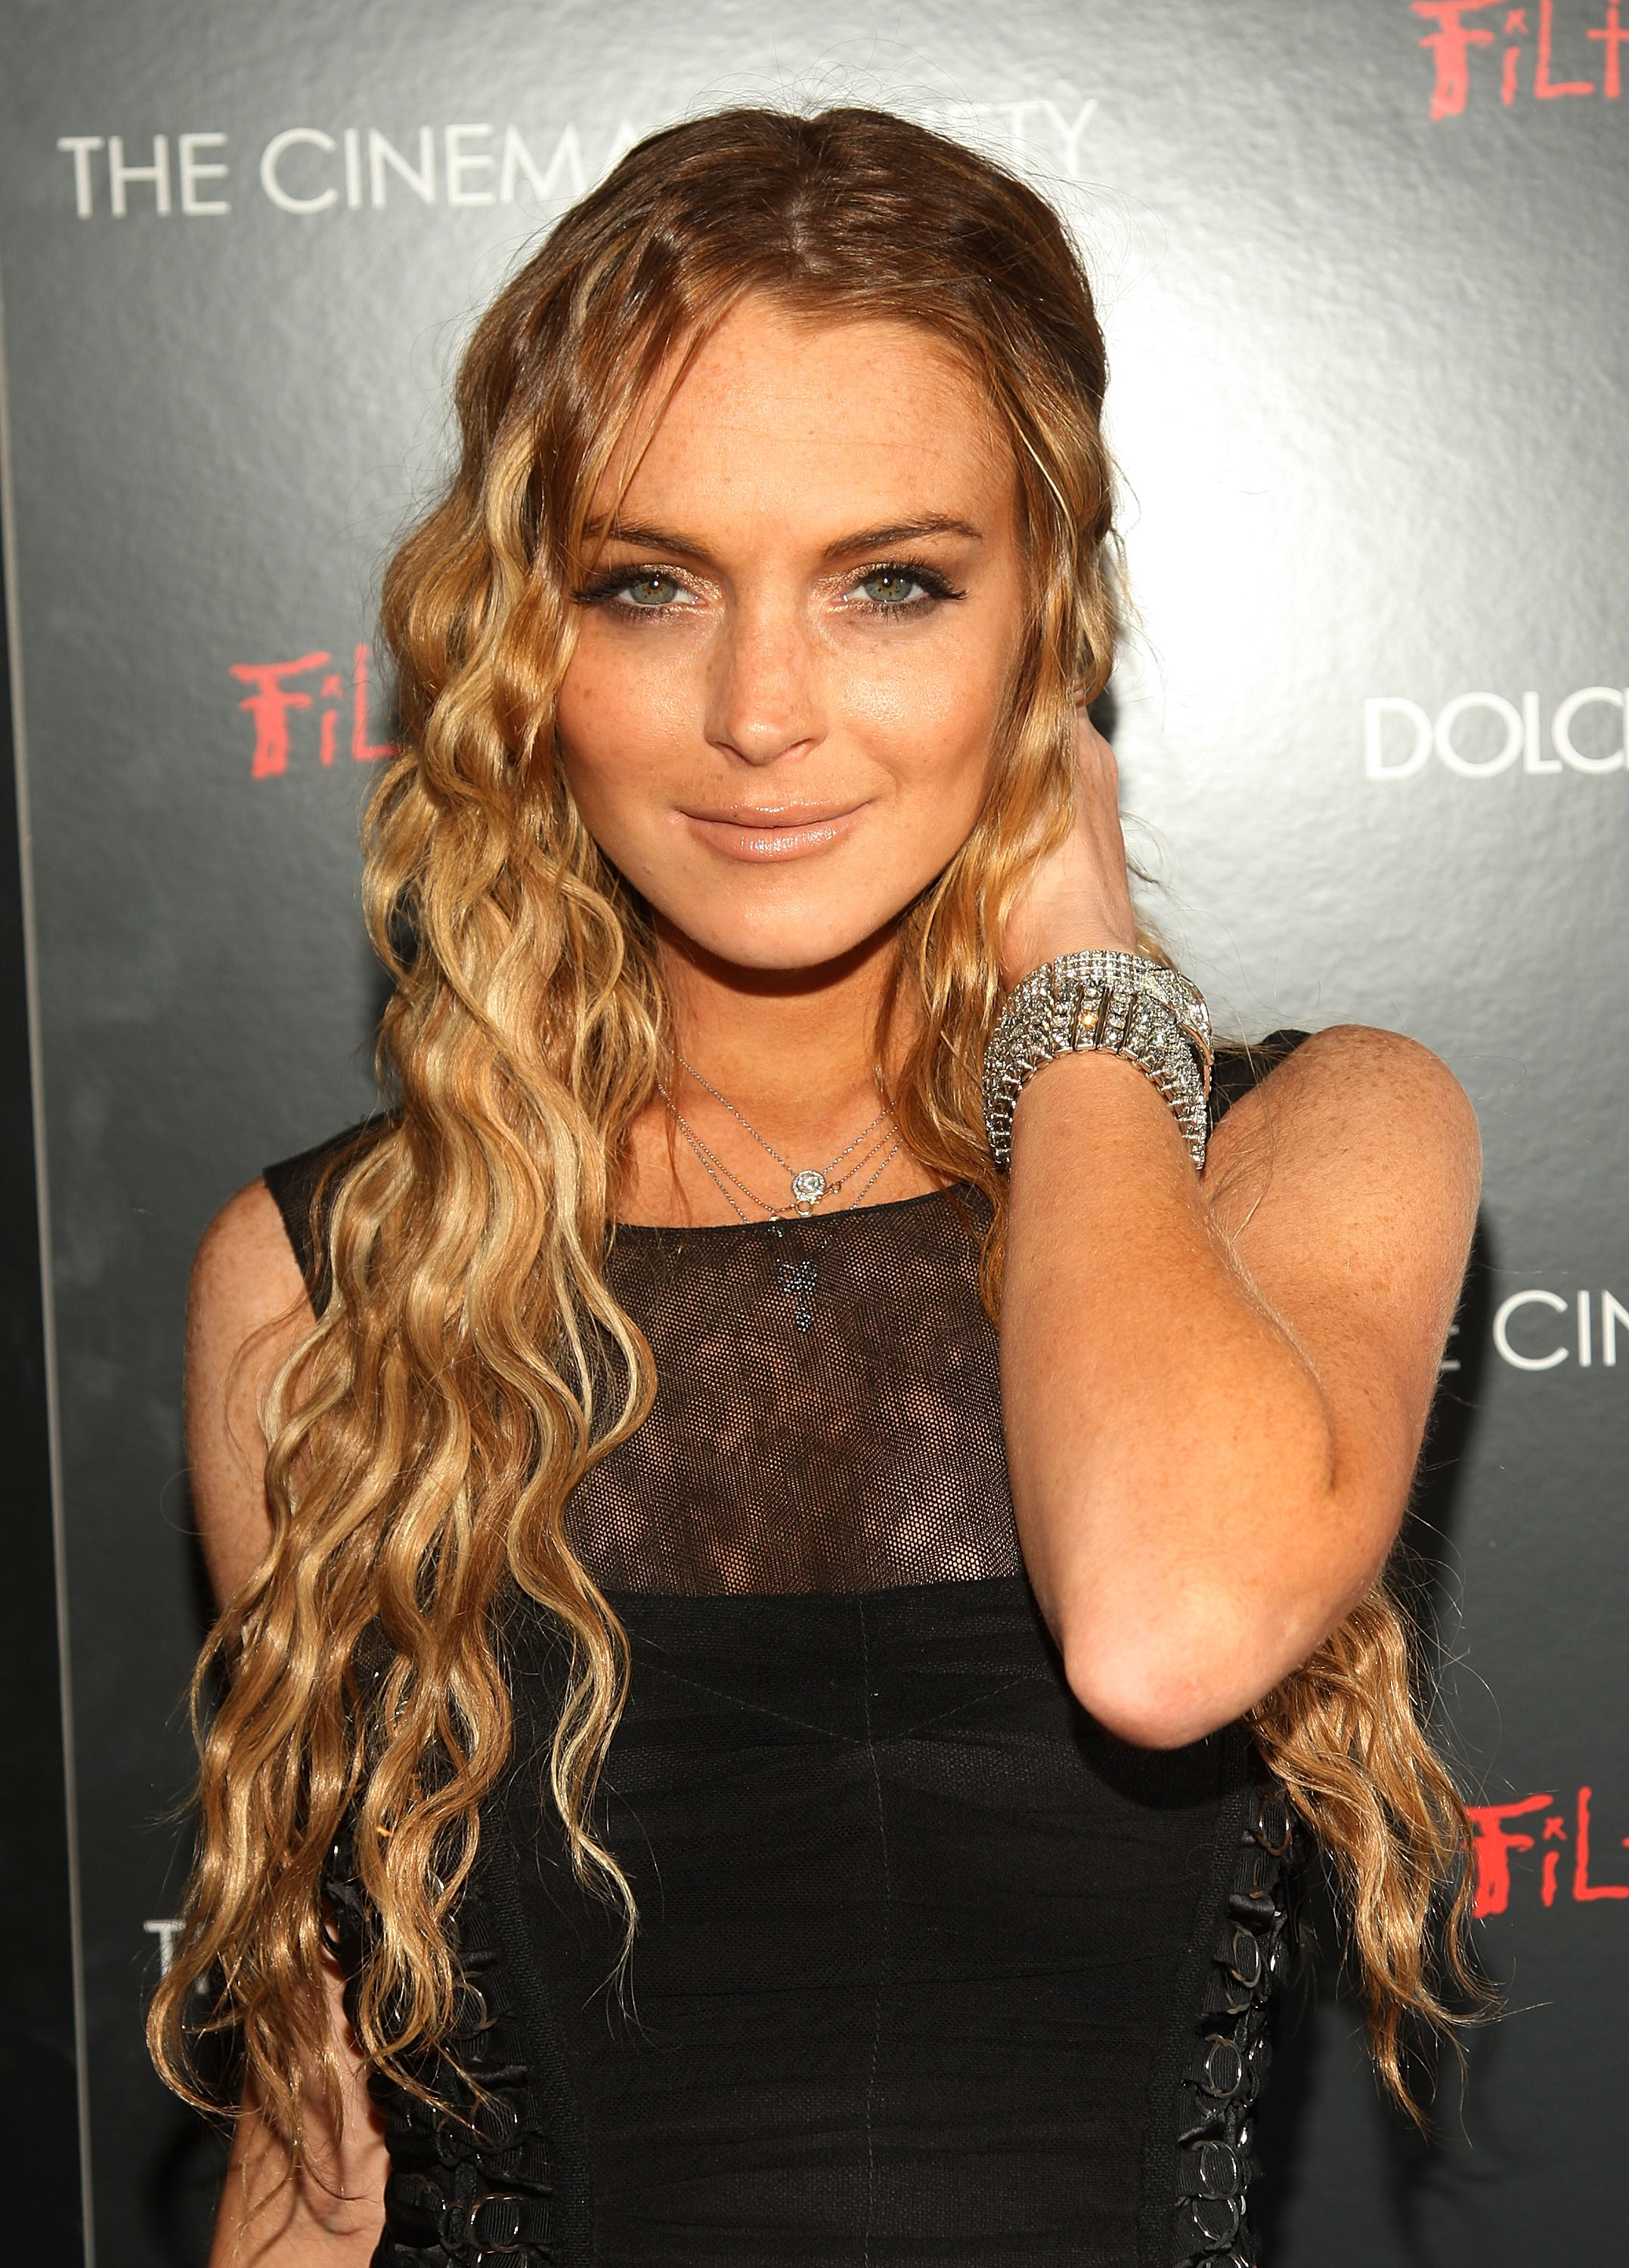 82014_Celebutopia-Lindsay_Lohan-Screening_of_Filth_and_Wisdom_in_New_York_City-09_122_998lo.jpg